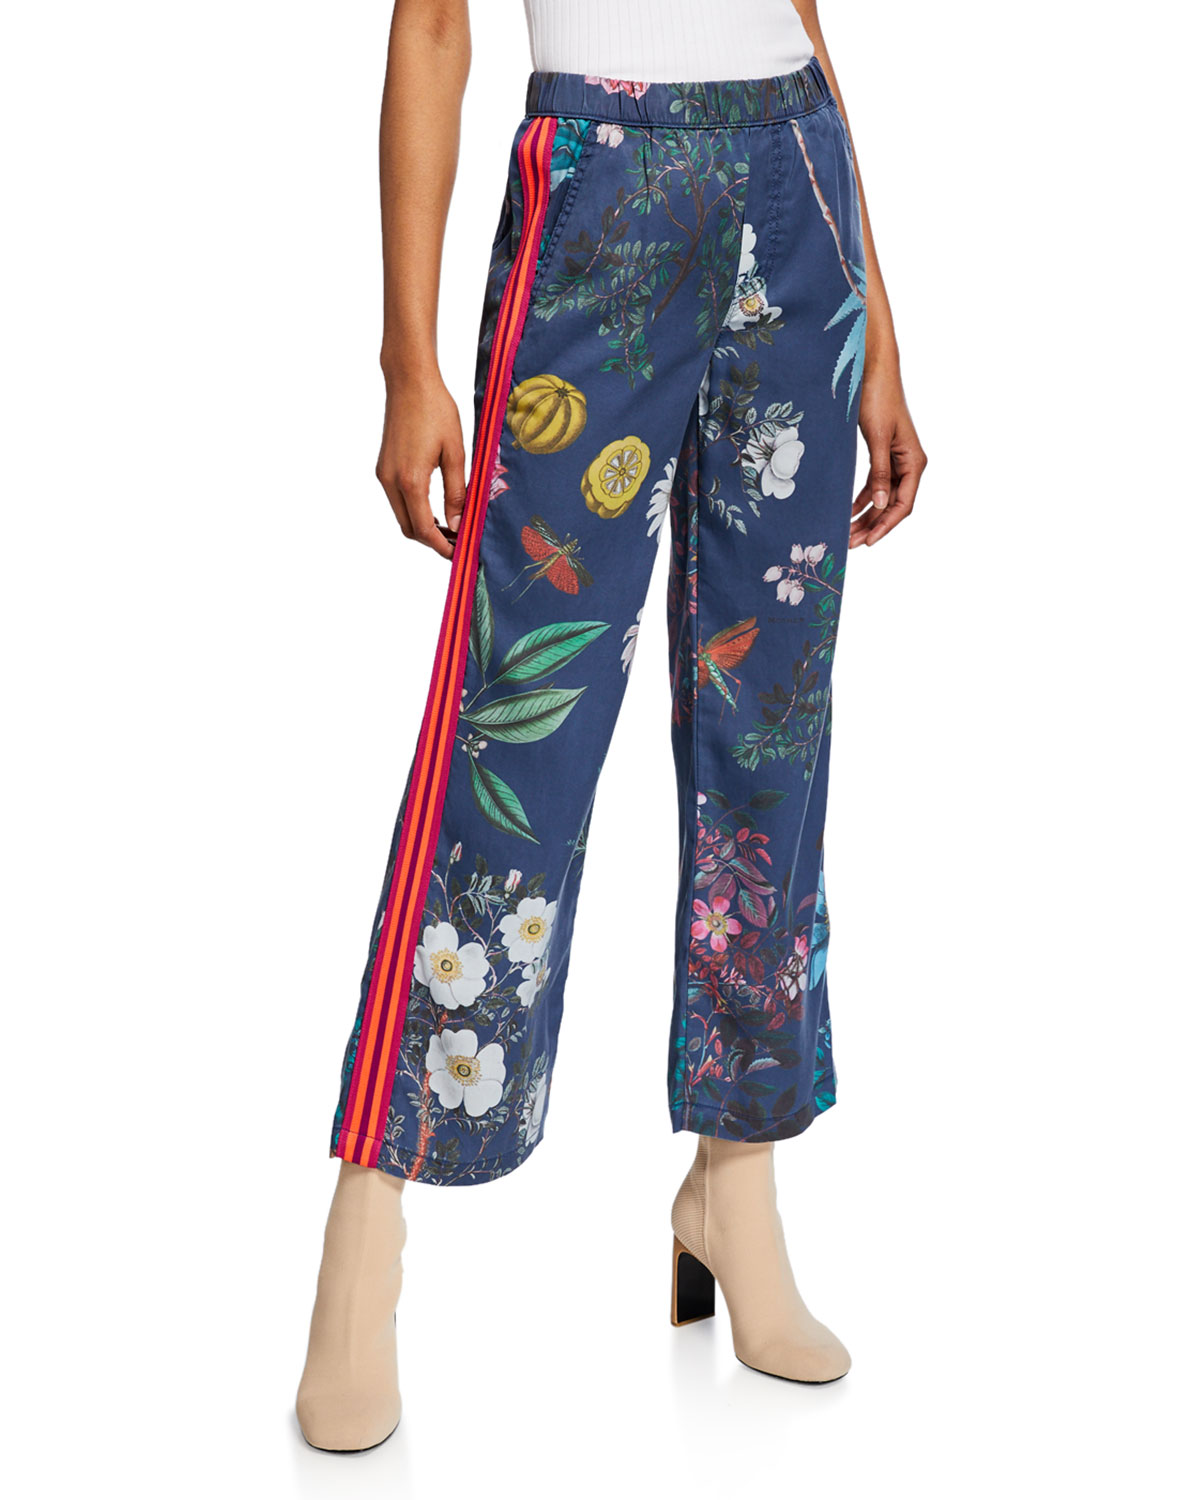 Mother Pants THE QUICKIE GREASER ANKLE PRINTED PANTS